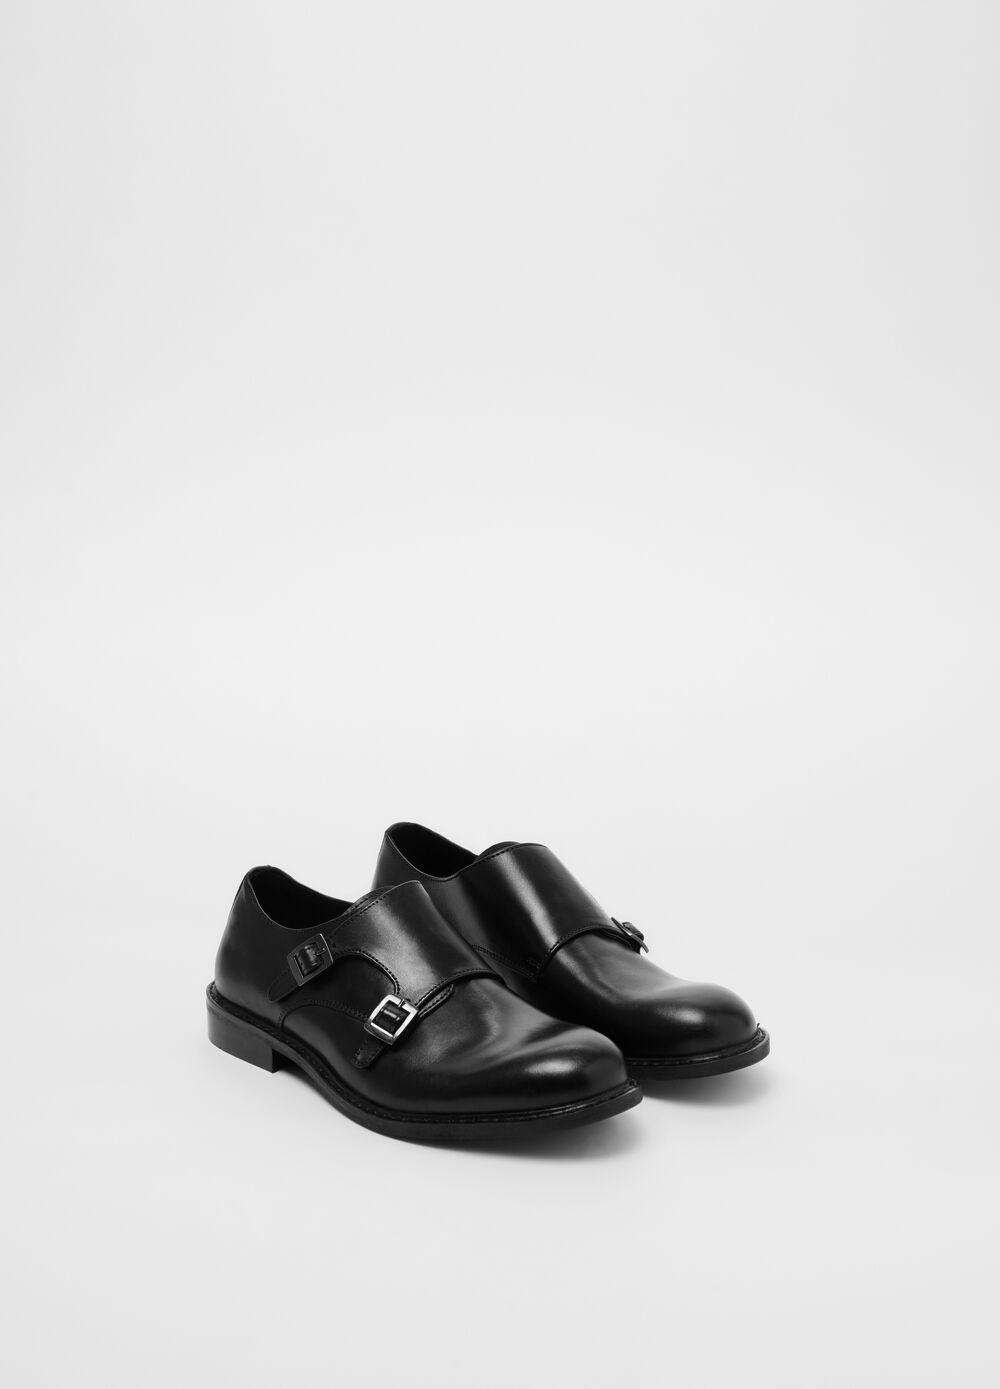 Genuine leather shoes with double buckle